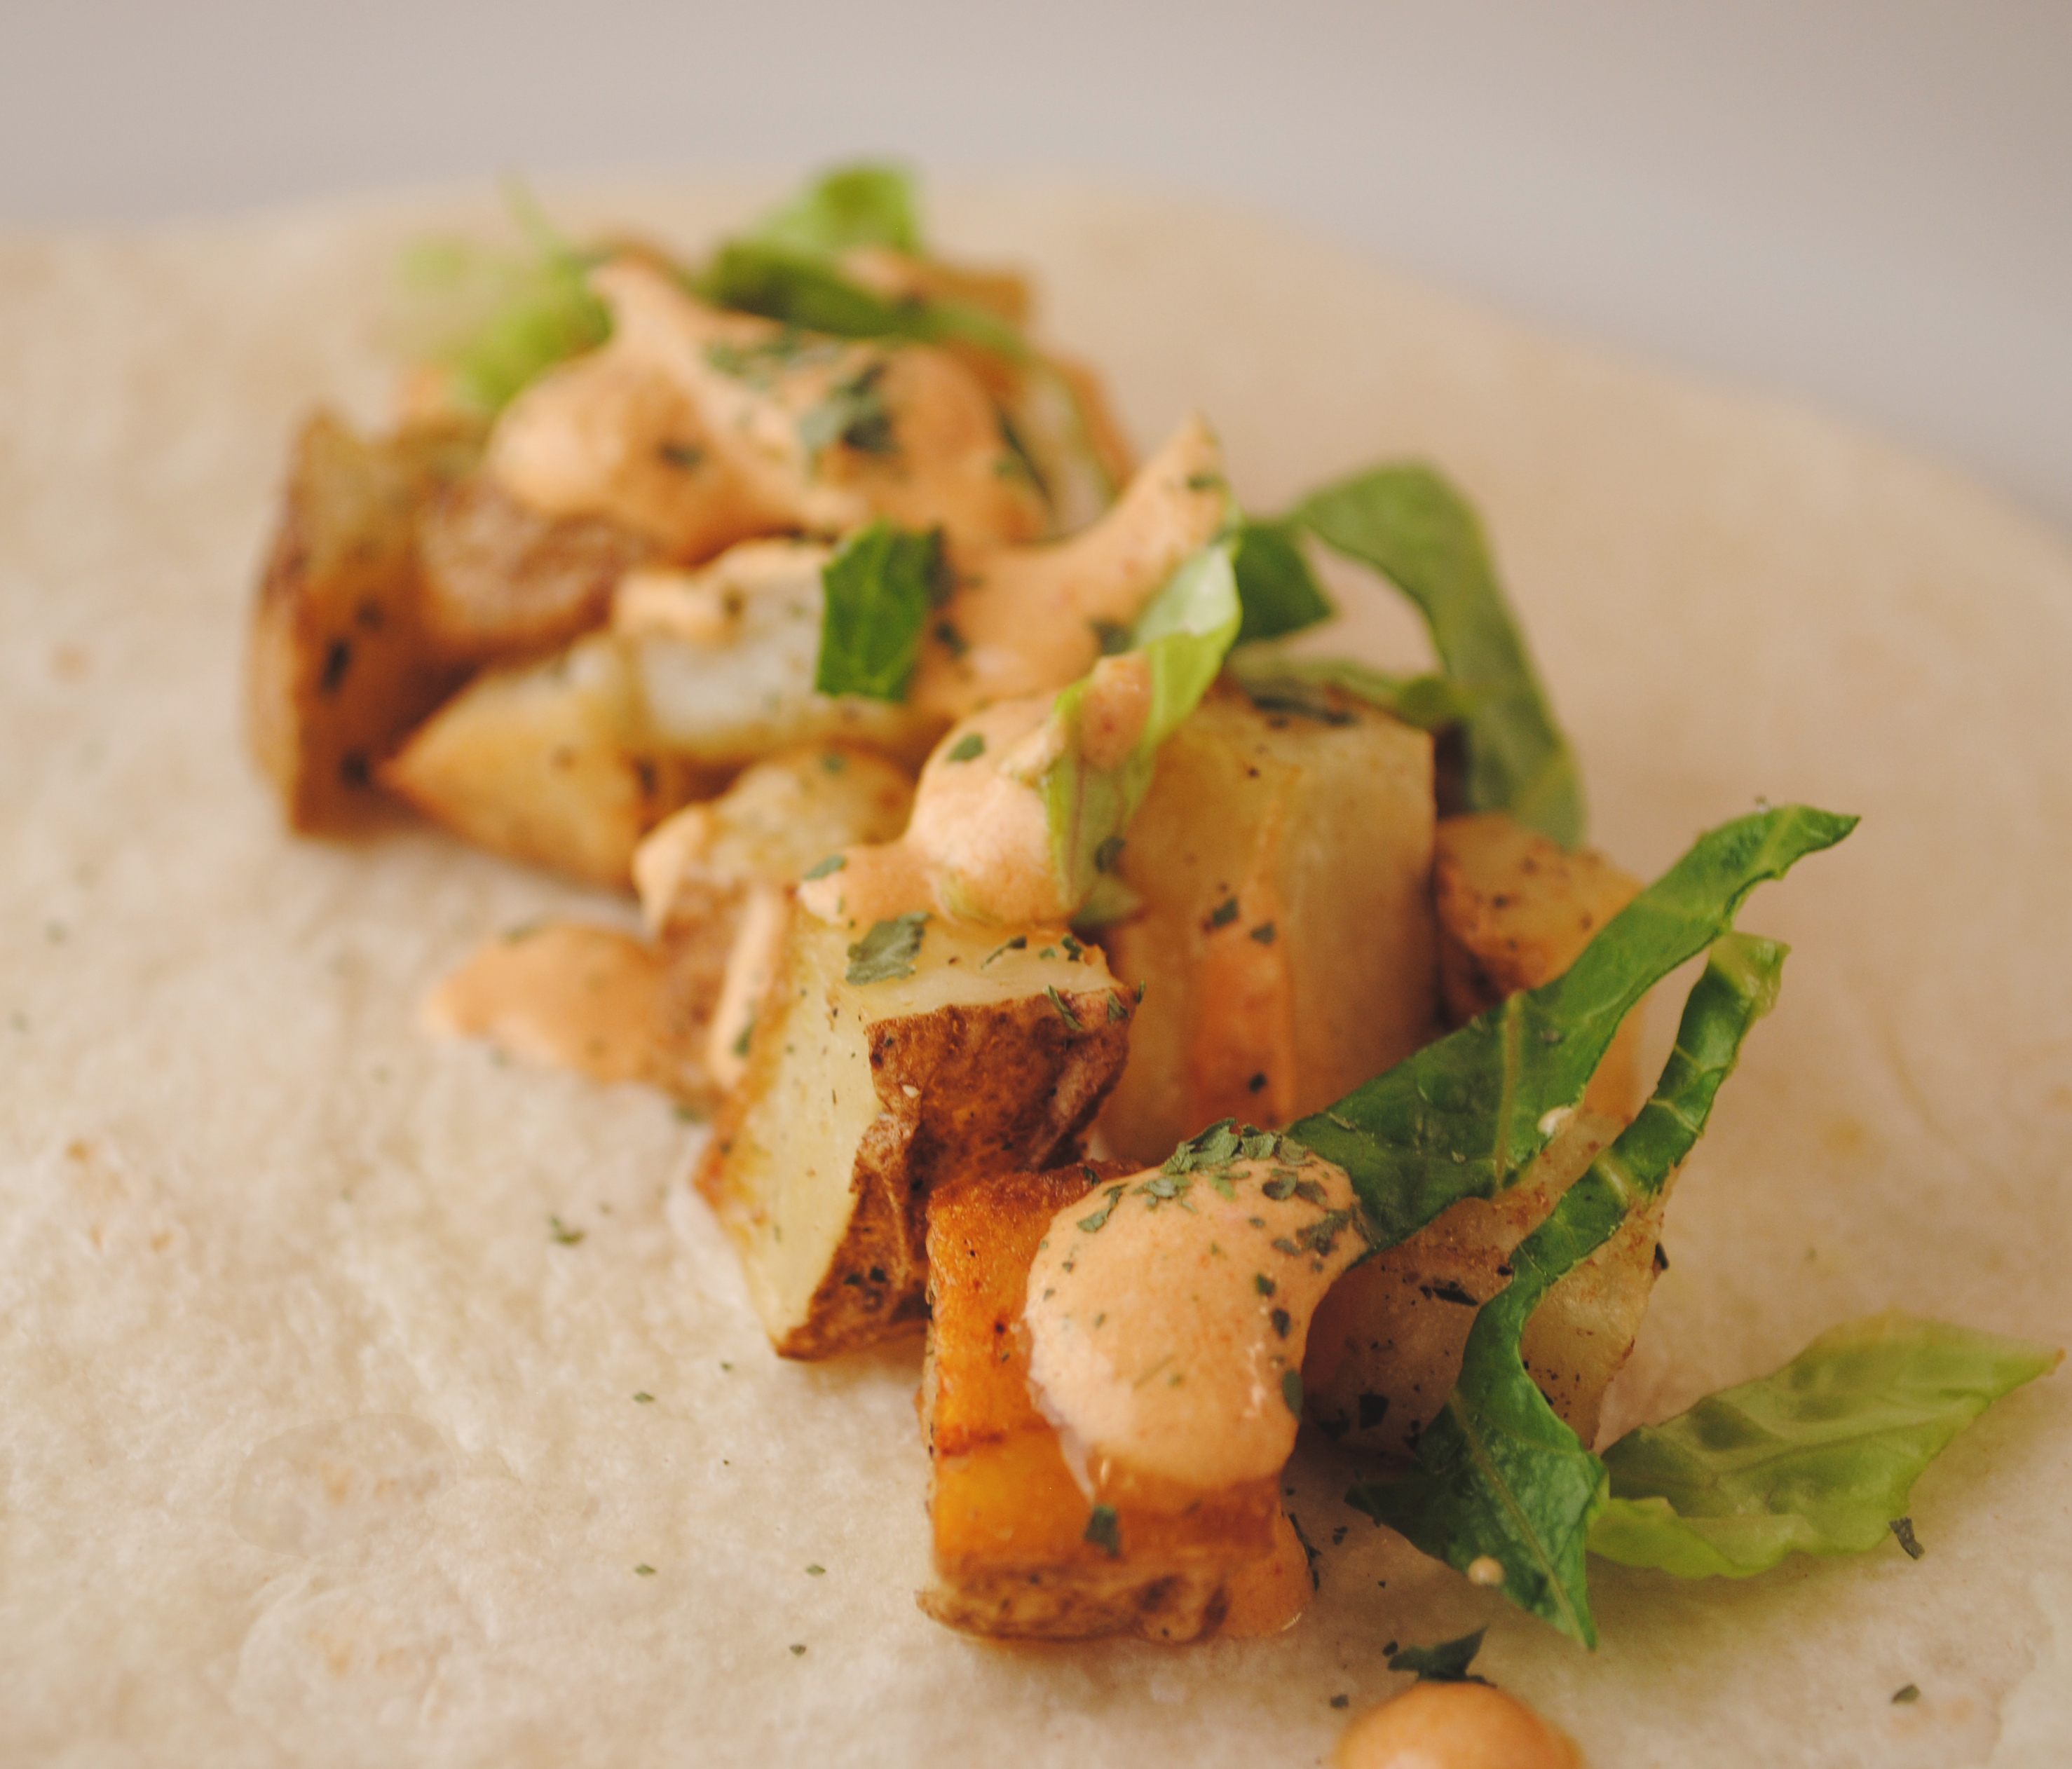 Vegan Crispy Potato Soft Taco (Inspired by Taco Bell)